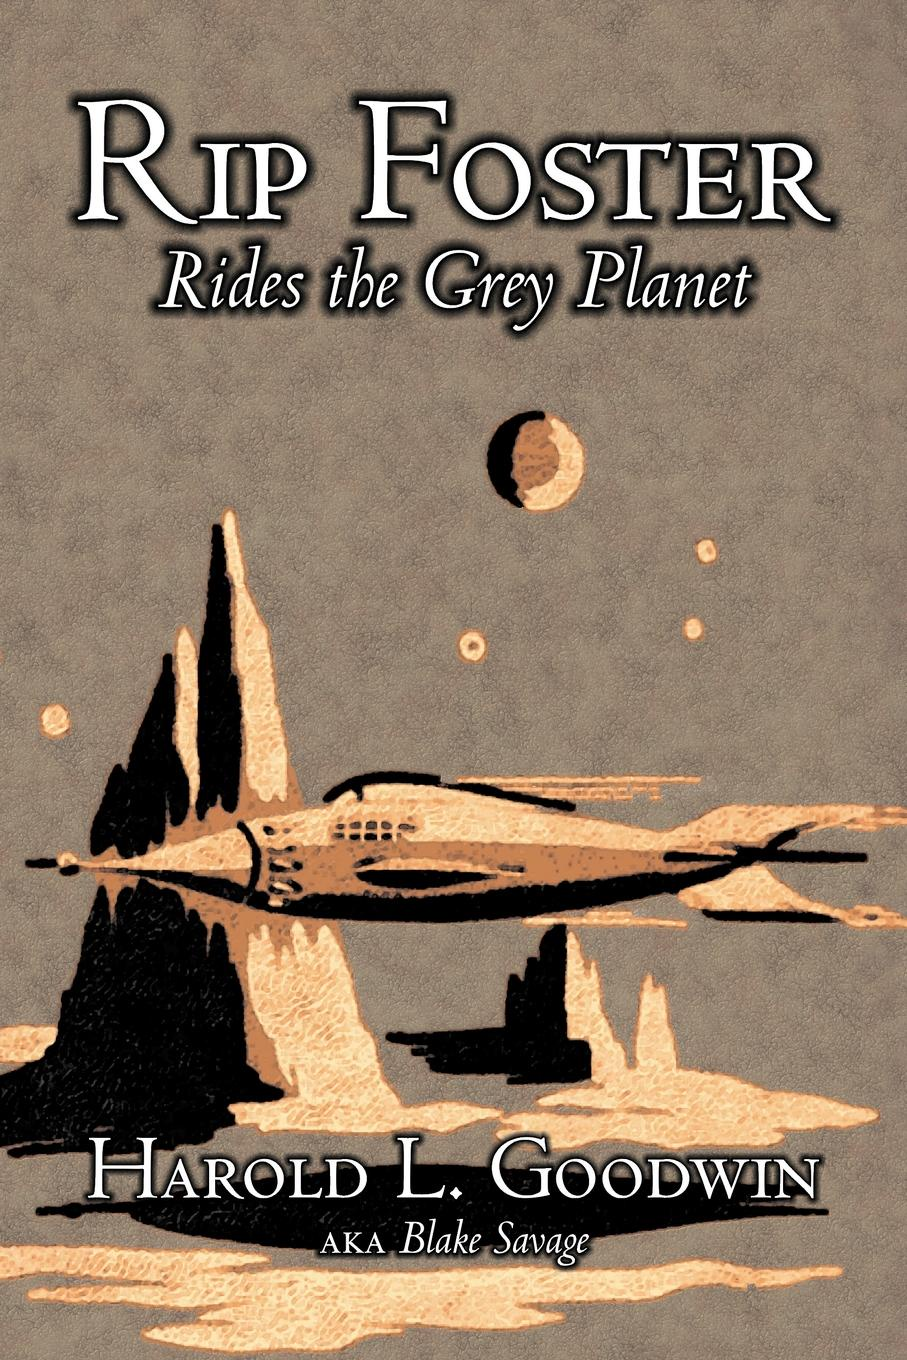 Harold L. Goodwin, Blake Savage Rip Foster Rides the Grey Planet by Harold L. Goodwin, Science Fiction, Adventure harriet newell foster lieutenant david nelson and his descendants